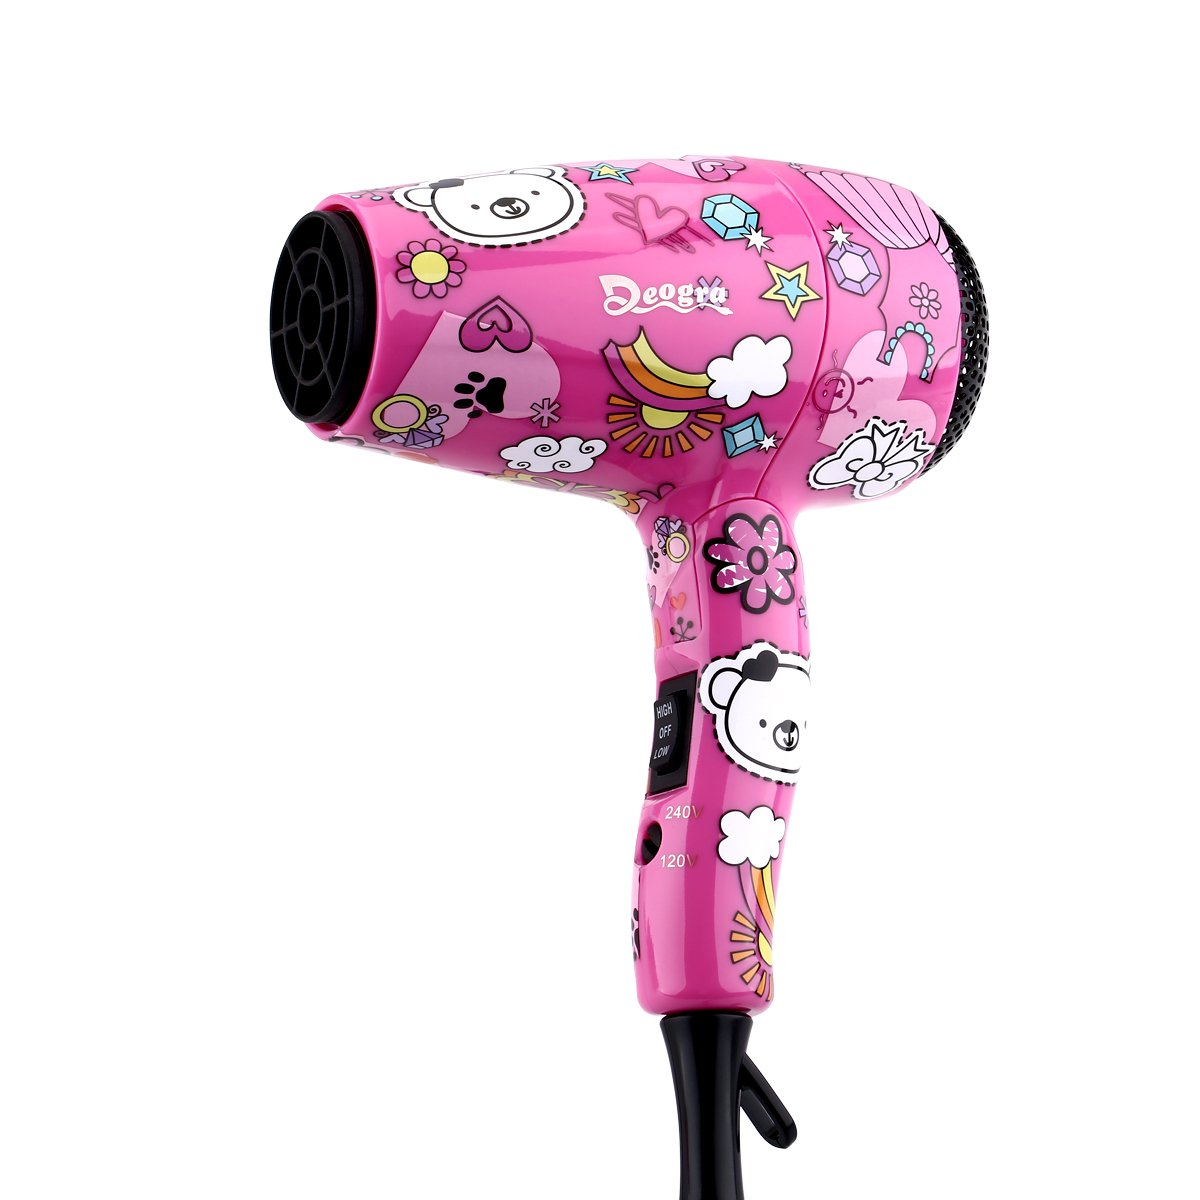 Deogra 1000W Foldable Kids Hair Dryer with ALCI Plug Compact Handle Blow Dryer with Diffuser Nozzle Dual Voltage for Home Use/Travel